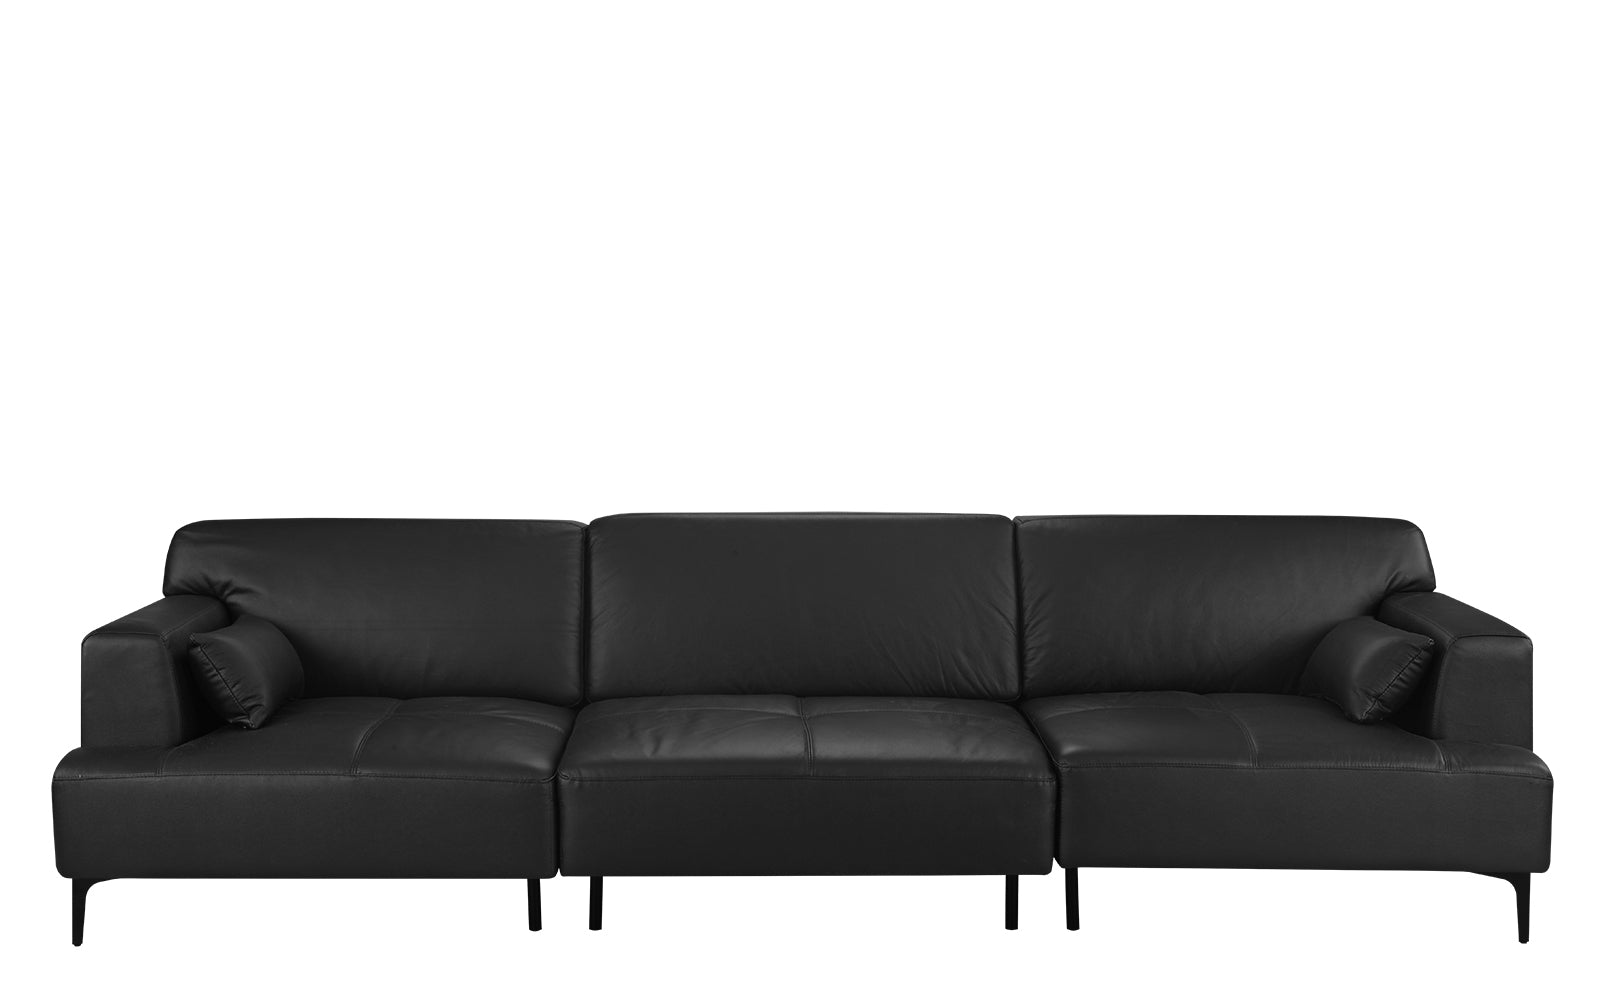 Oversized Leather Sofa Image